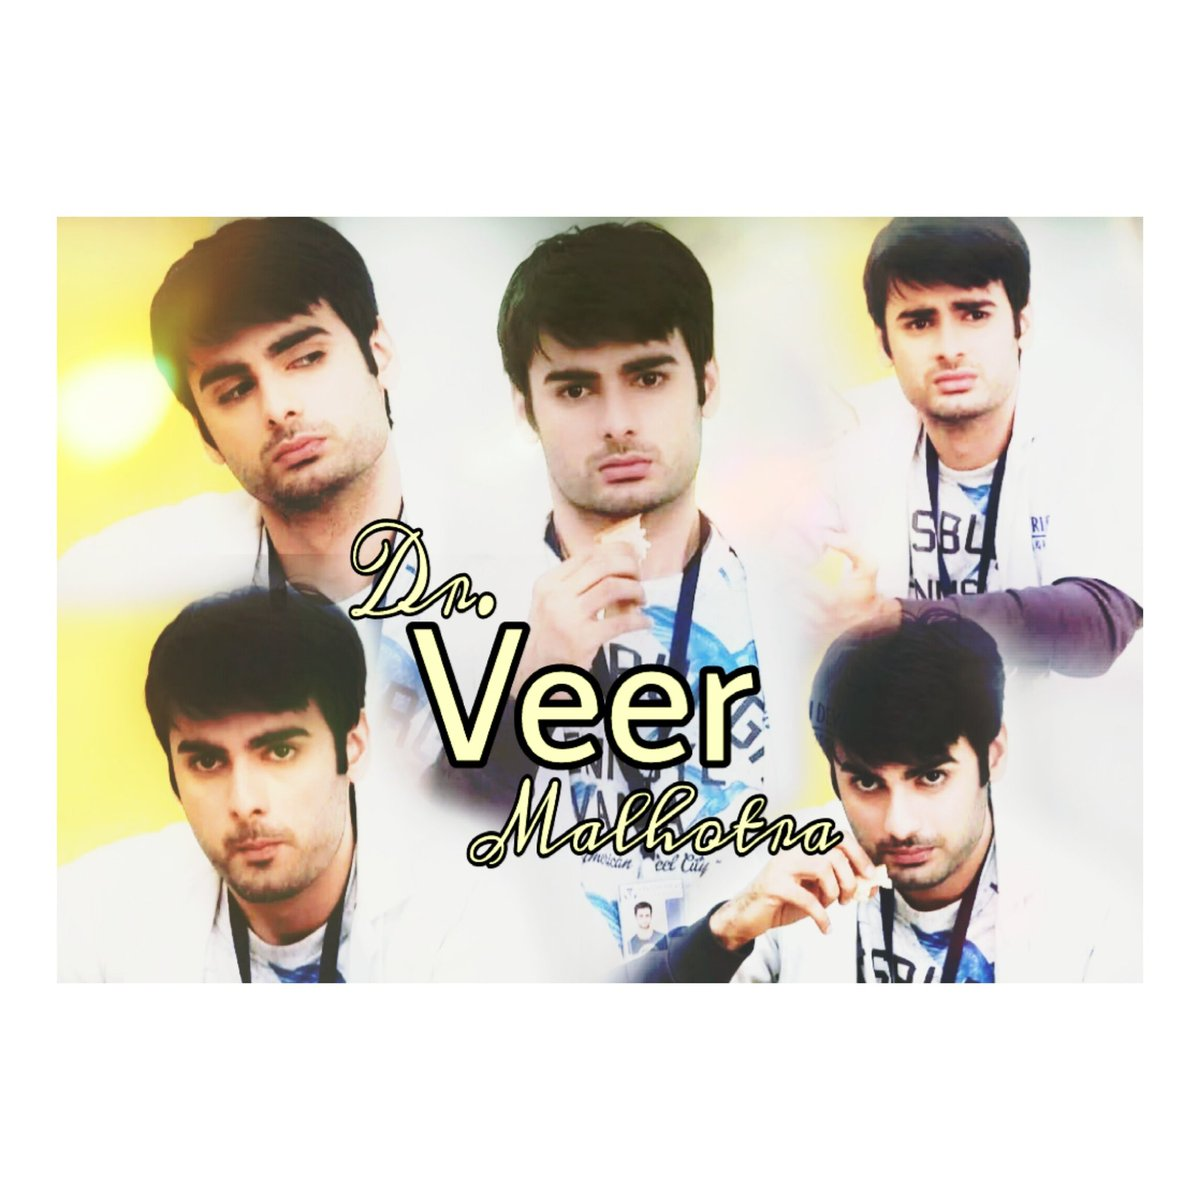 Isnt he slaying the role of Veer ?? #CutiePie #VarunKapoor #MyJaan @ColorsTV @s_oneness @jessicakaur27 @akhilahoney @swasan_forver<br>http://pic.twitter.com/OdcifsFopx